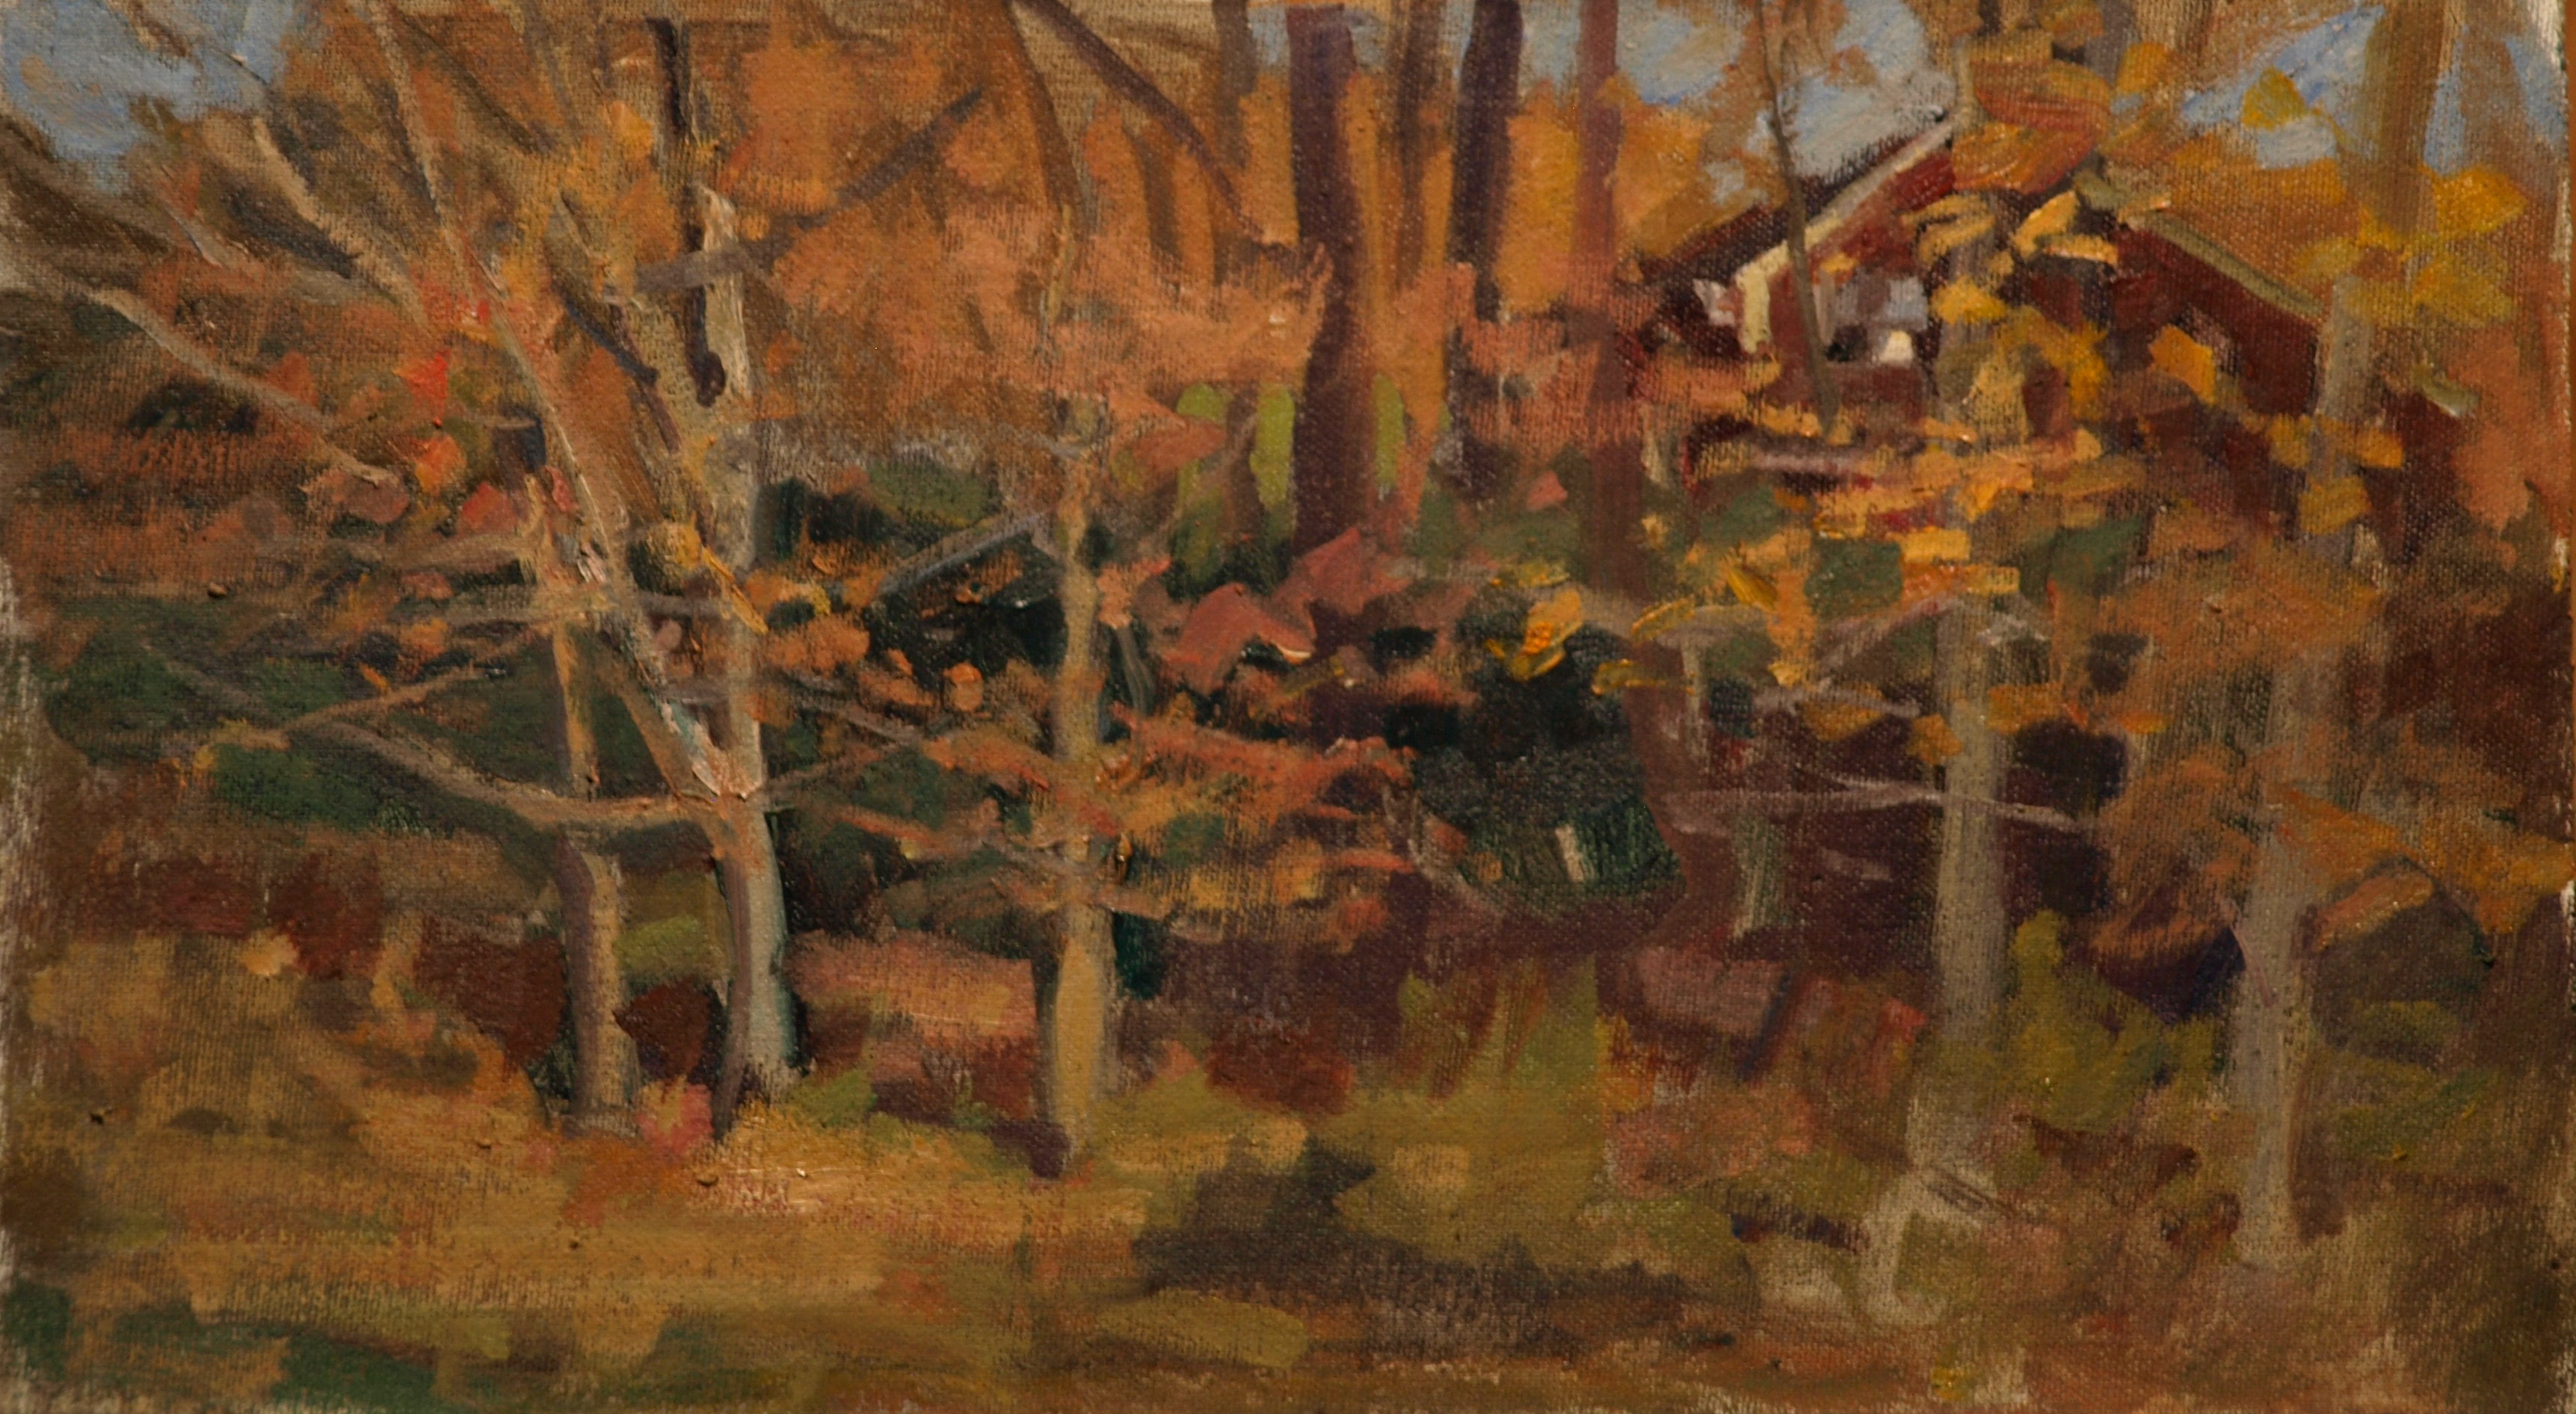 View of Home, Oil on Canvas on Panel, 9 x 16 Inches, by Susan Grisell, $250